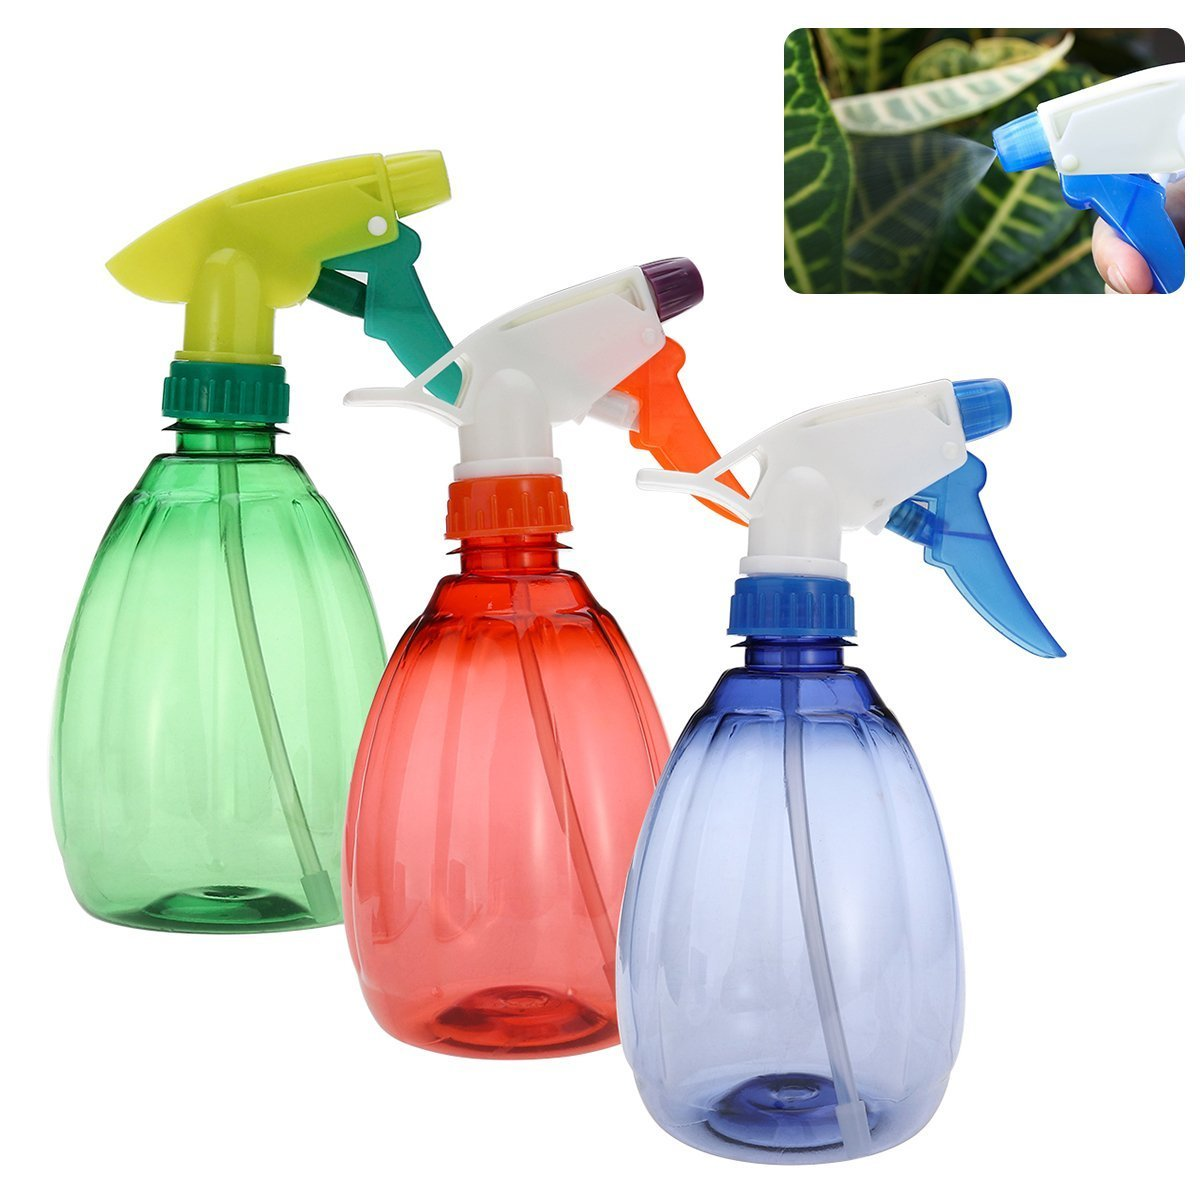 Frcolor 2pcs 550ml Empty Spray Bottle Multi-functional Plastic Spray (Assorted Colors)